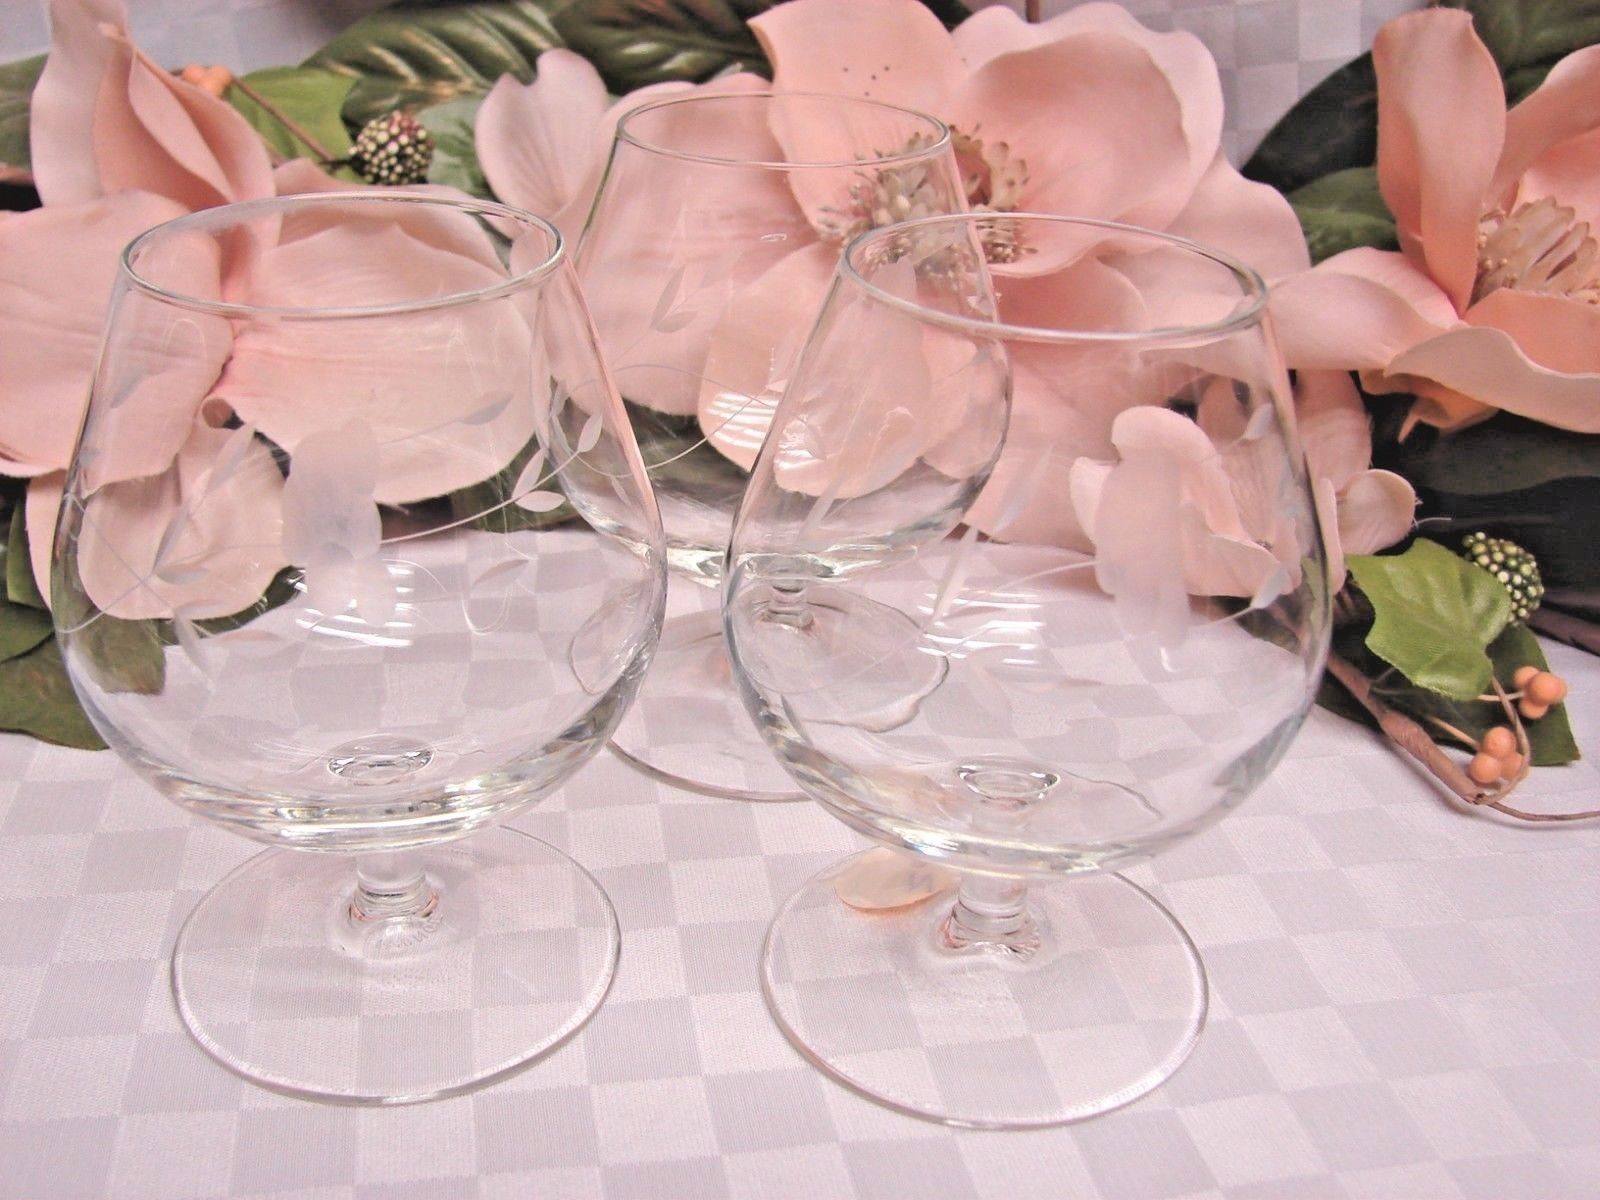 princess house heritage large vase of princess house heritage crystal floral design clear 3 footed brandy pertaining to princess house heritage crystal floral design clear 3 footed brandy glass royal teacup body porcelian replacement doulton dinnerware cupcake